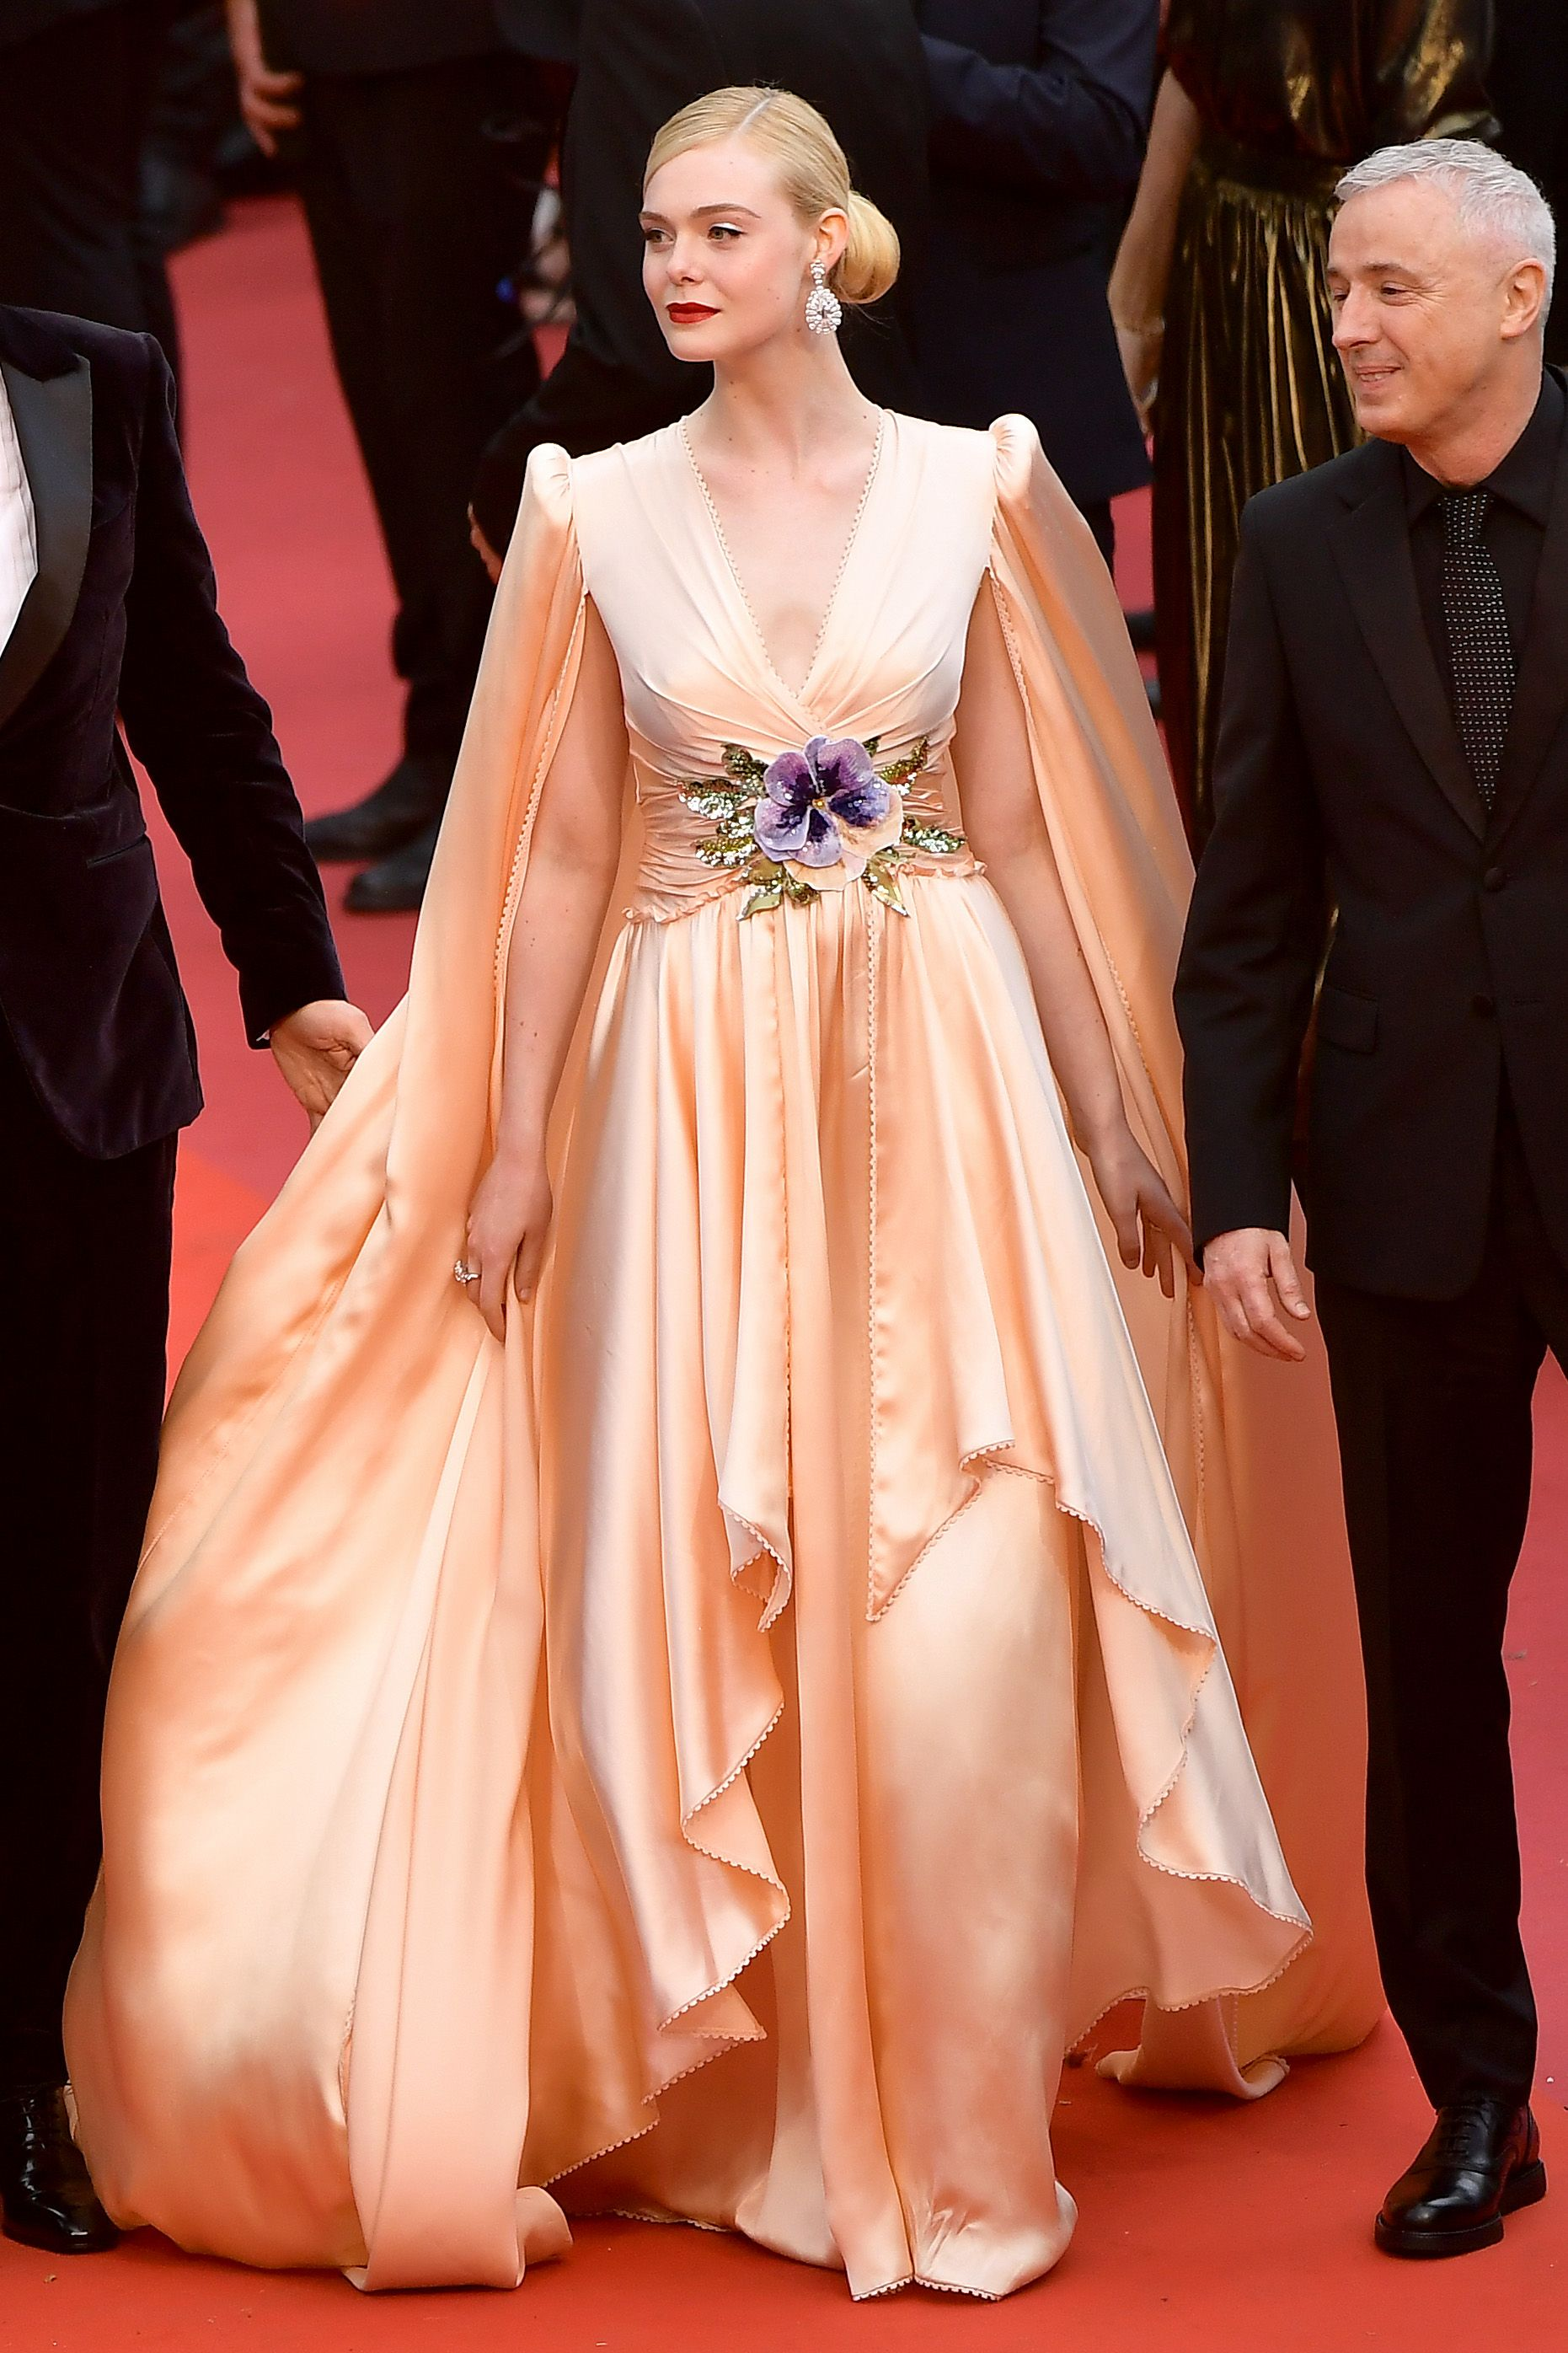 Elle Fanning At the opening ceremony of the Cannes Film Festival and premiere of The Dead Don't Die .